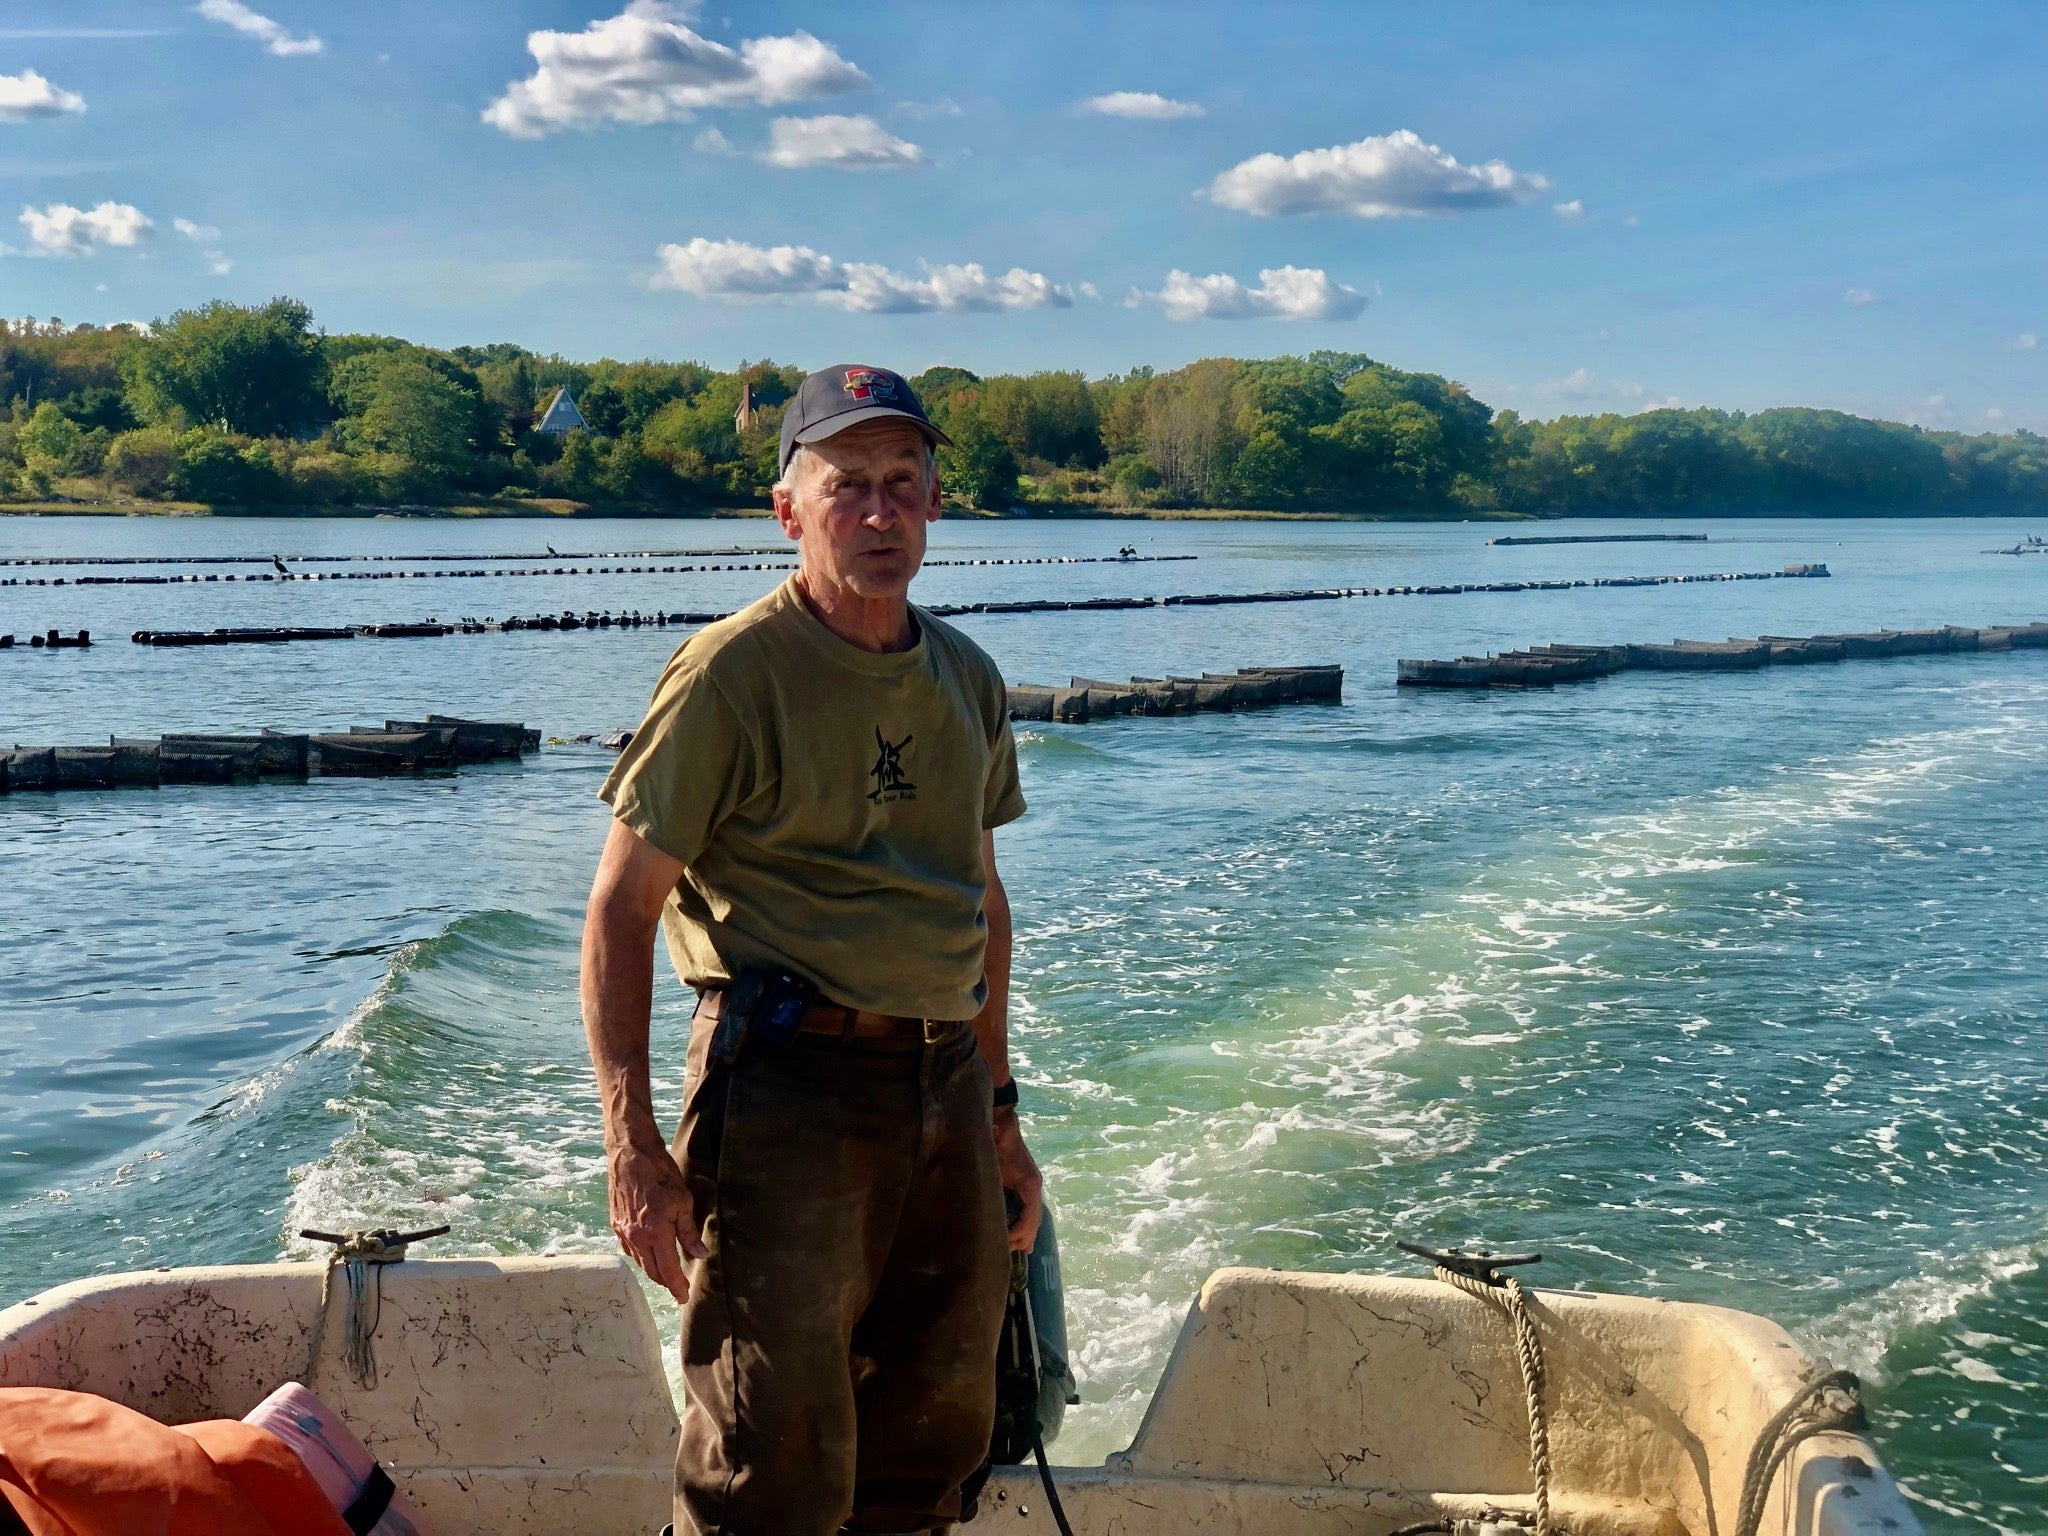 Oyster Farm manager, Ralph Hamill on the skiff.